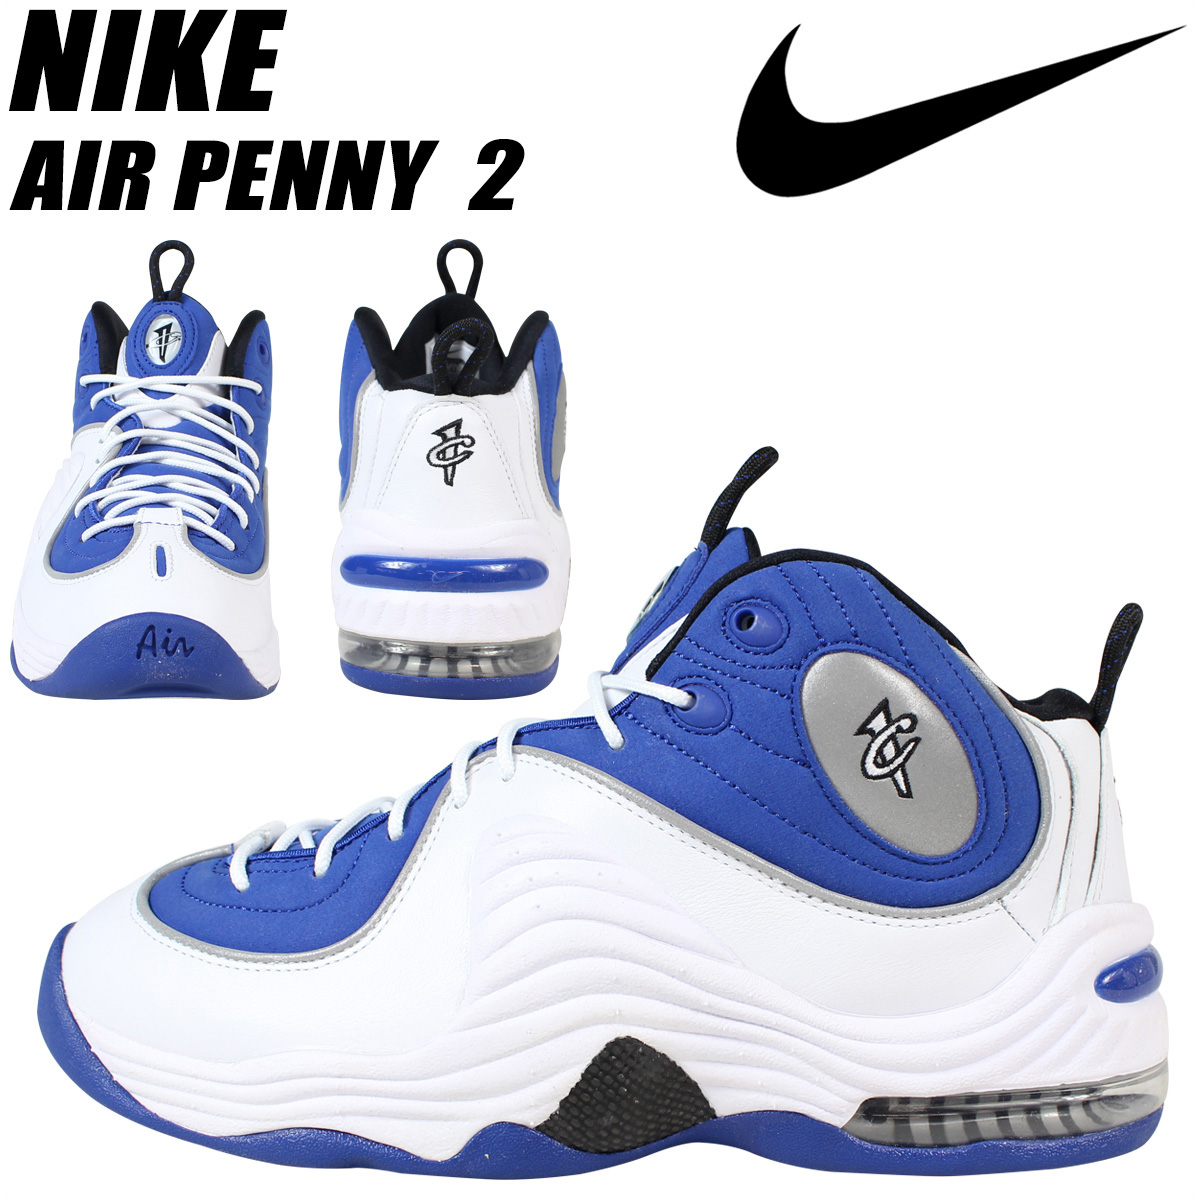 0f98f8feed5 ALLSPORTS   SOLD OUT  NIKE Nike Air penny sneakers AIR PENNY 2 Orlando  Magic 333886-400 men s shoes white